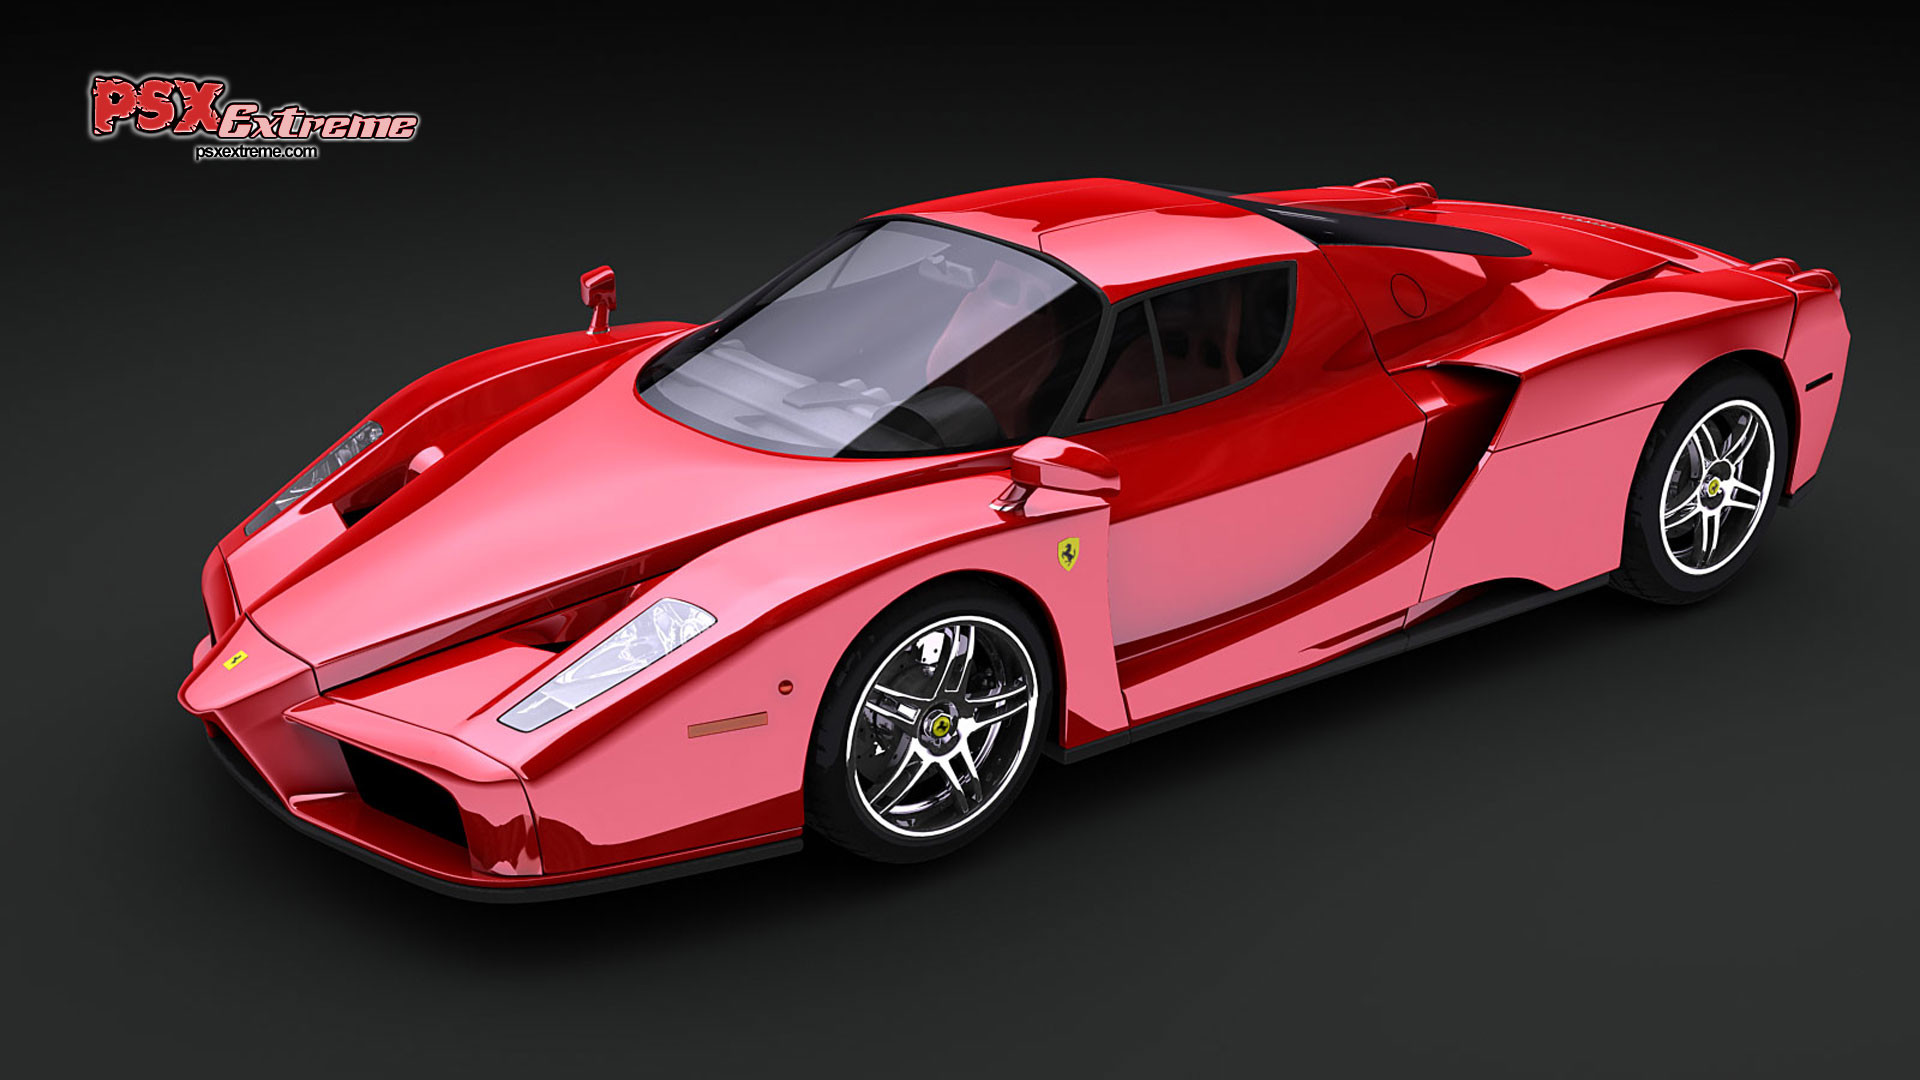 1920x1080 Ferrari Enzo Wallpapers